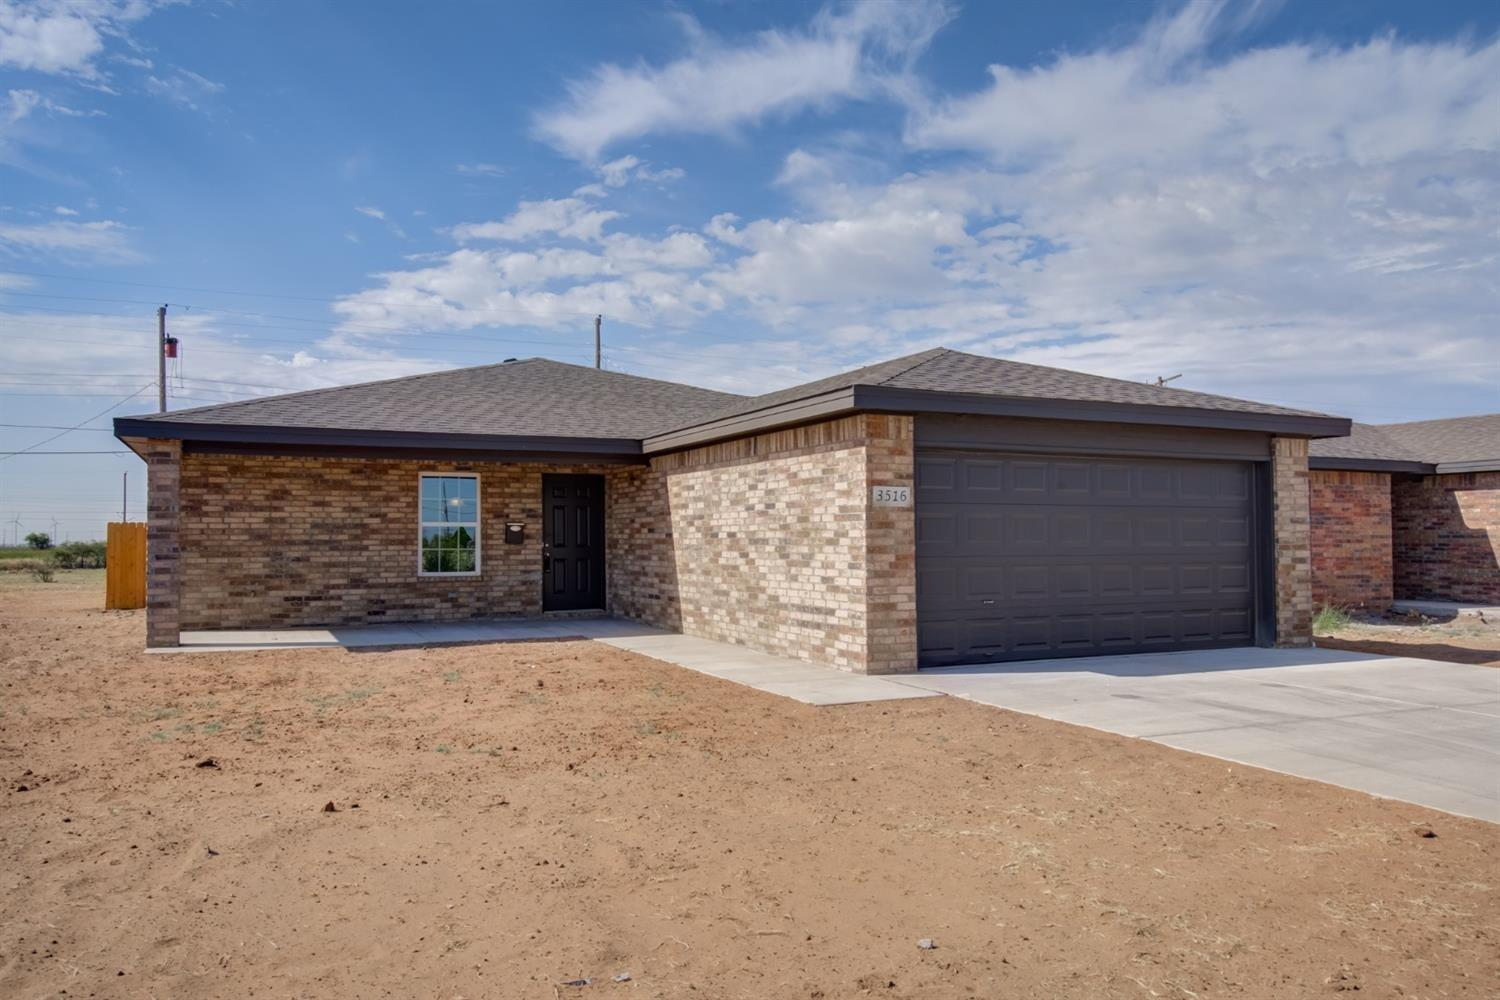 Recently built in 2019, this quality home has a great kitchen with stainless-steel appliances, a pantry and large front porch. The backyard is fully fenced. The Amazing layout makes this 4-bedroom home look & feel very spacious.